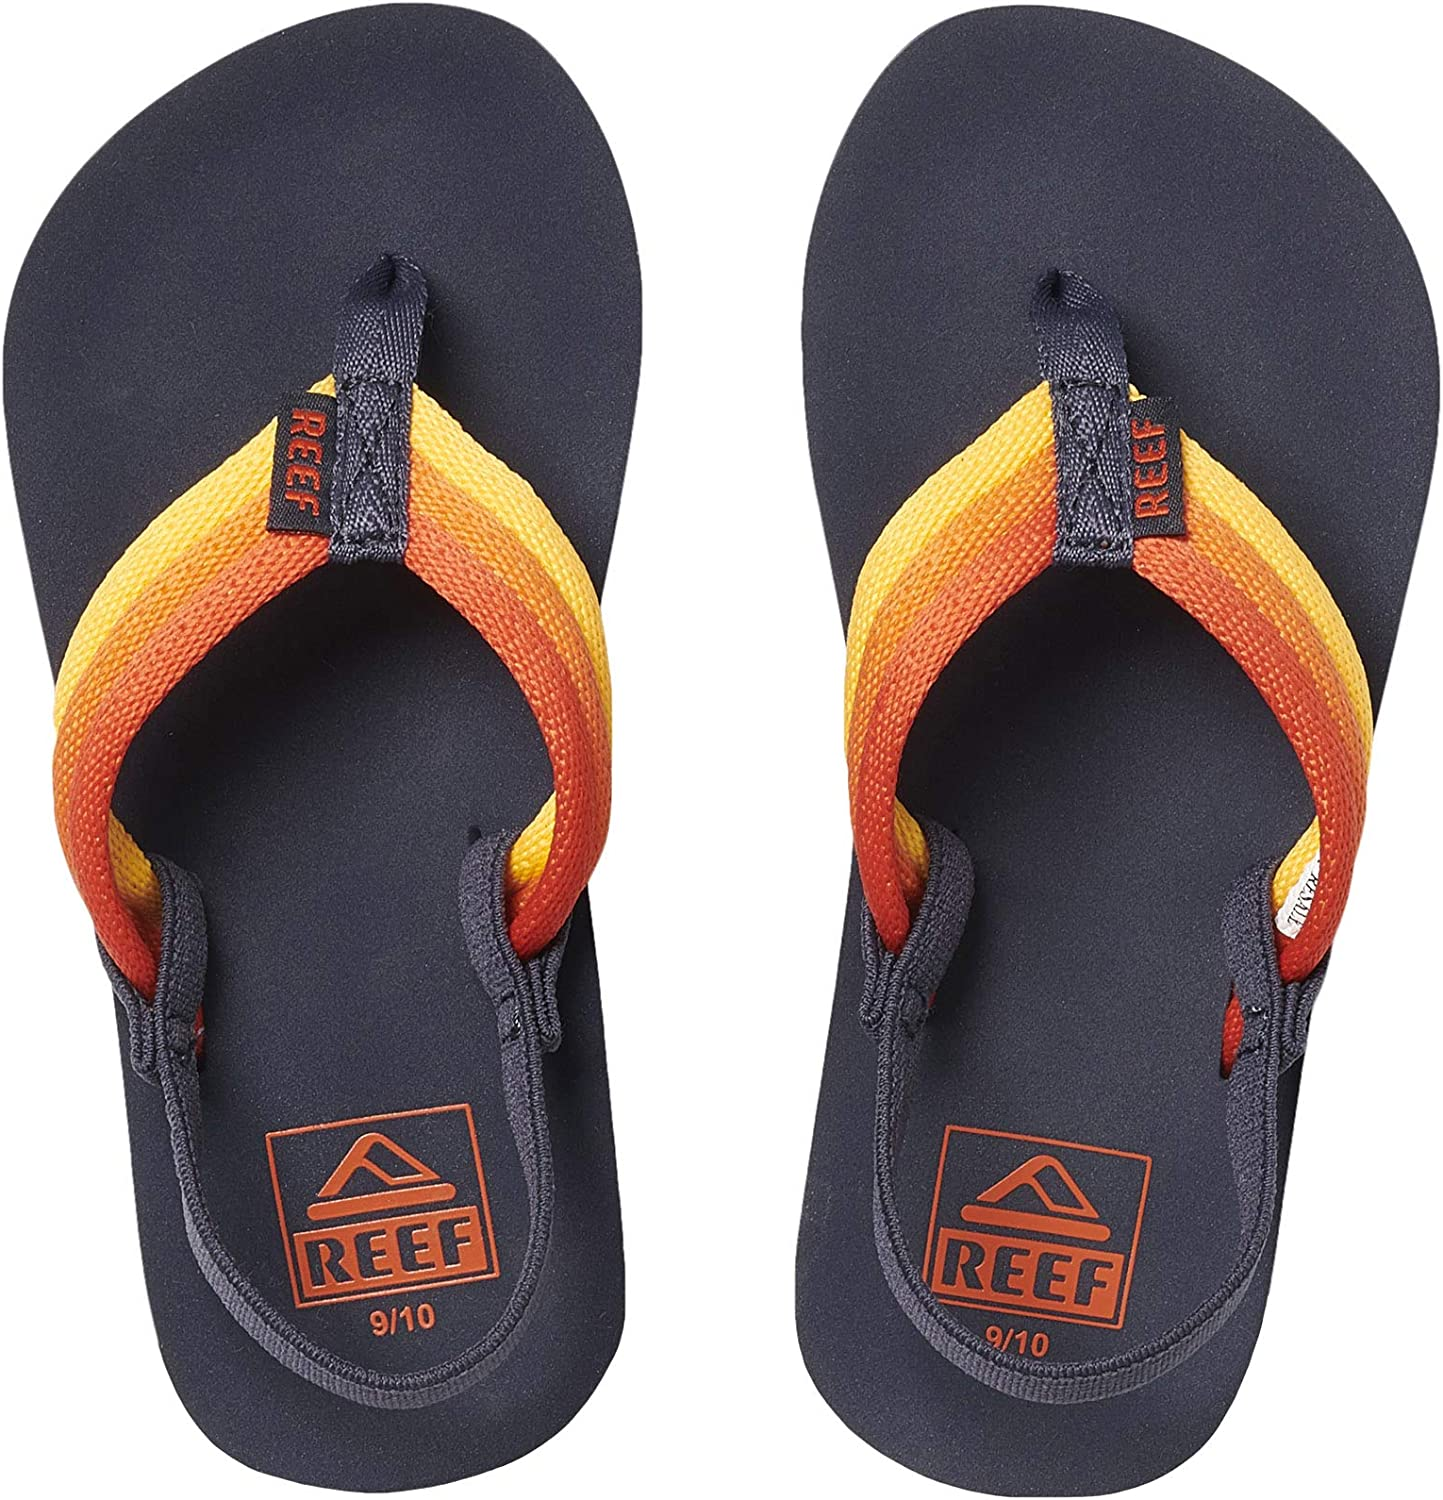 Reef Unisex-Child Little Ahi Sandal